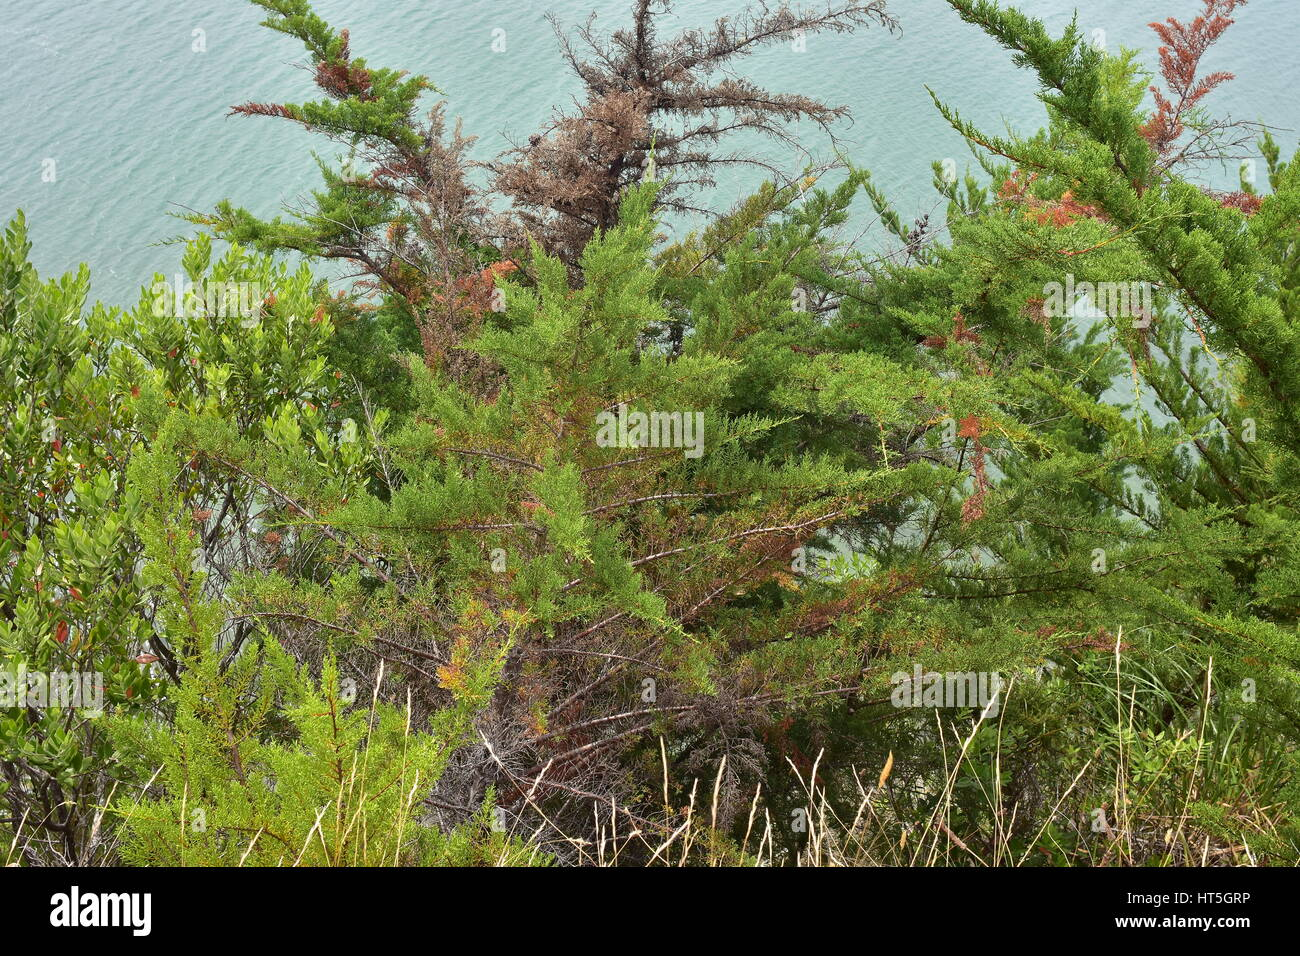 Dense conifer tree branches hiding calm water surface. Stock Photo